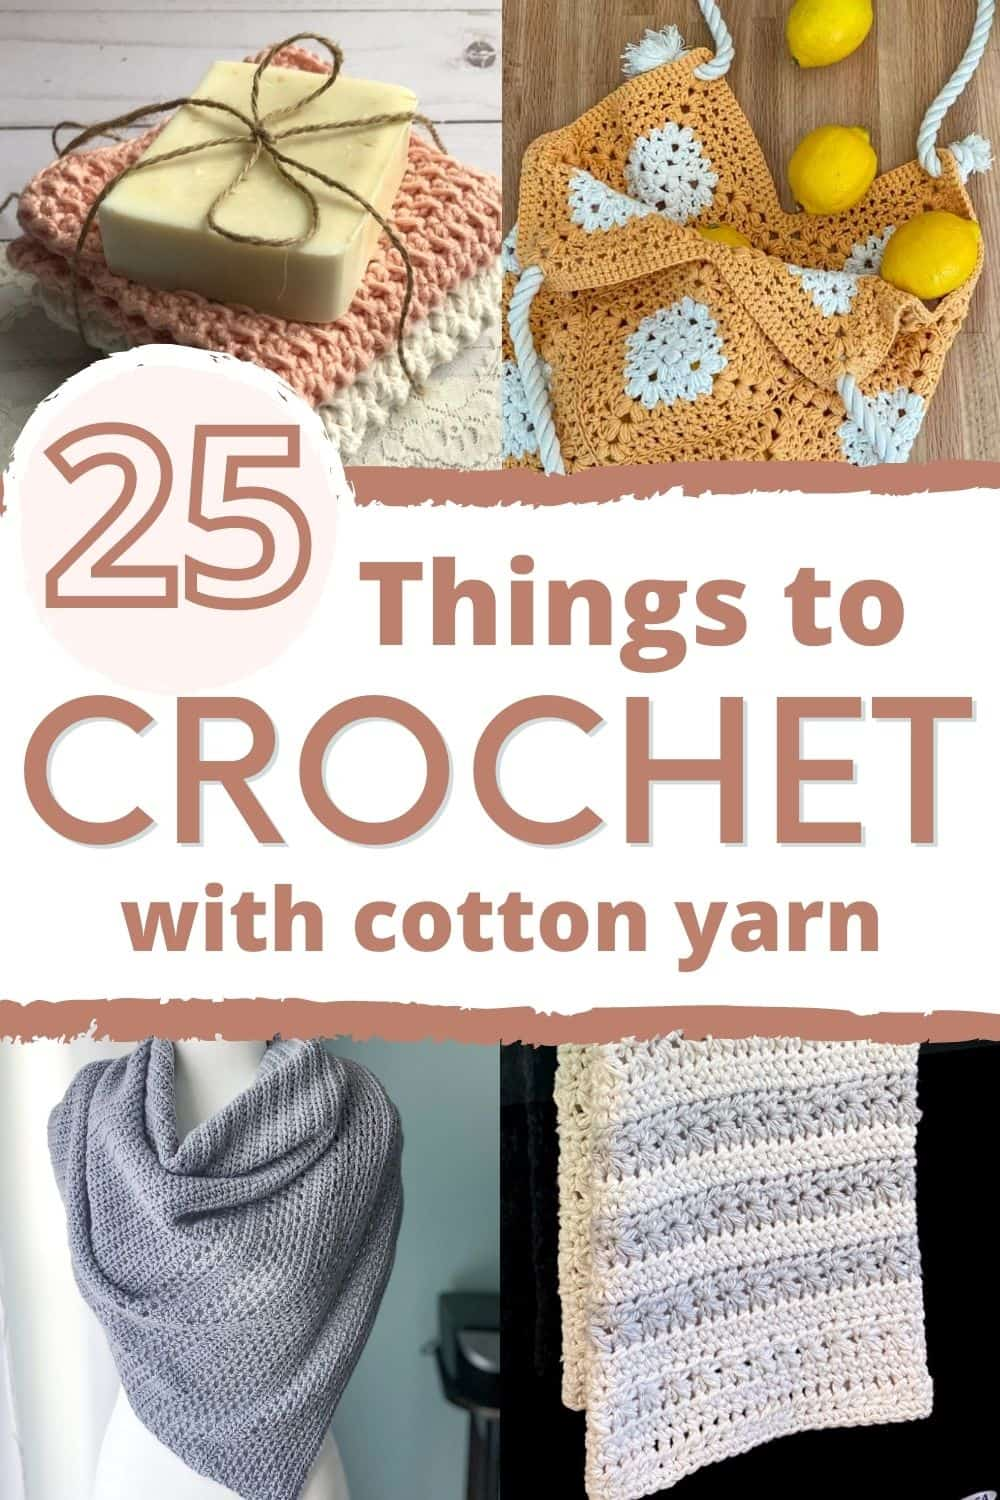 collage 4 different cotton crochet projects with text saying 25 things to crochet with cotton yarn